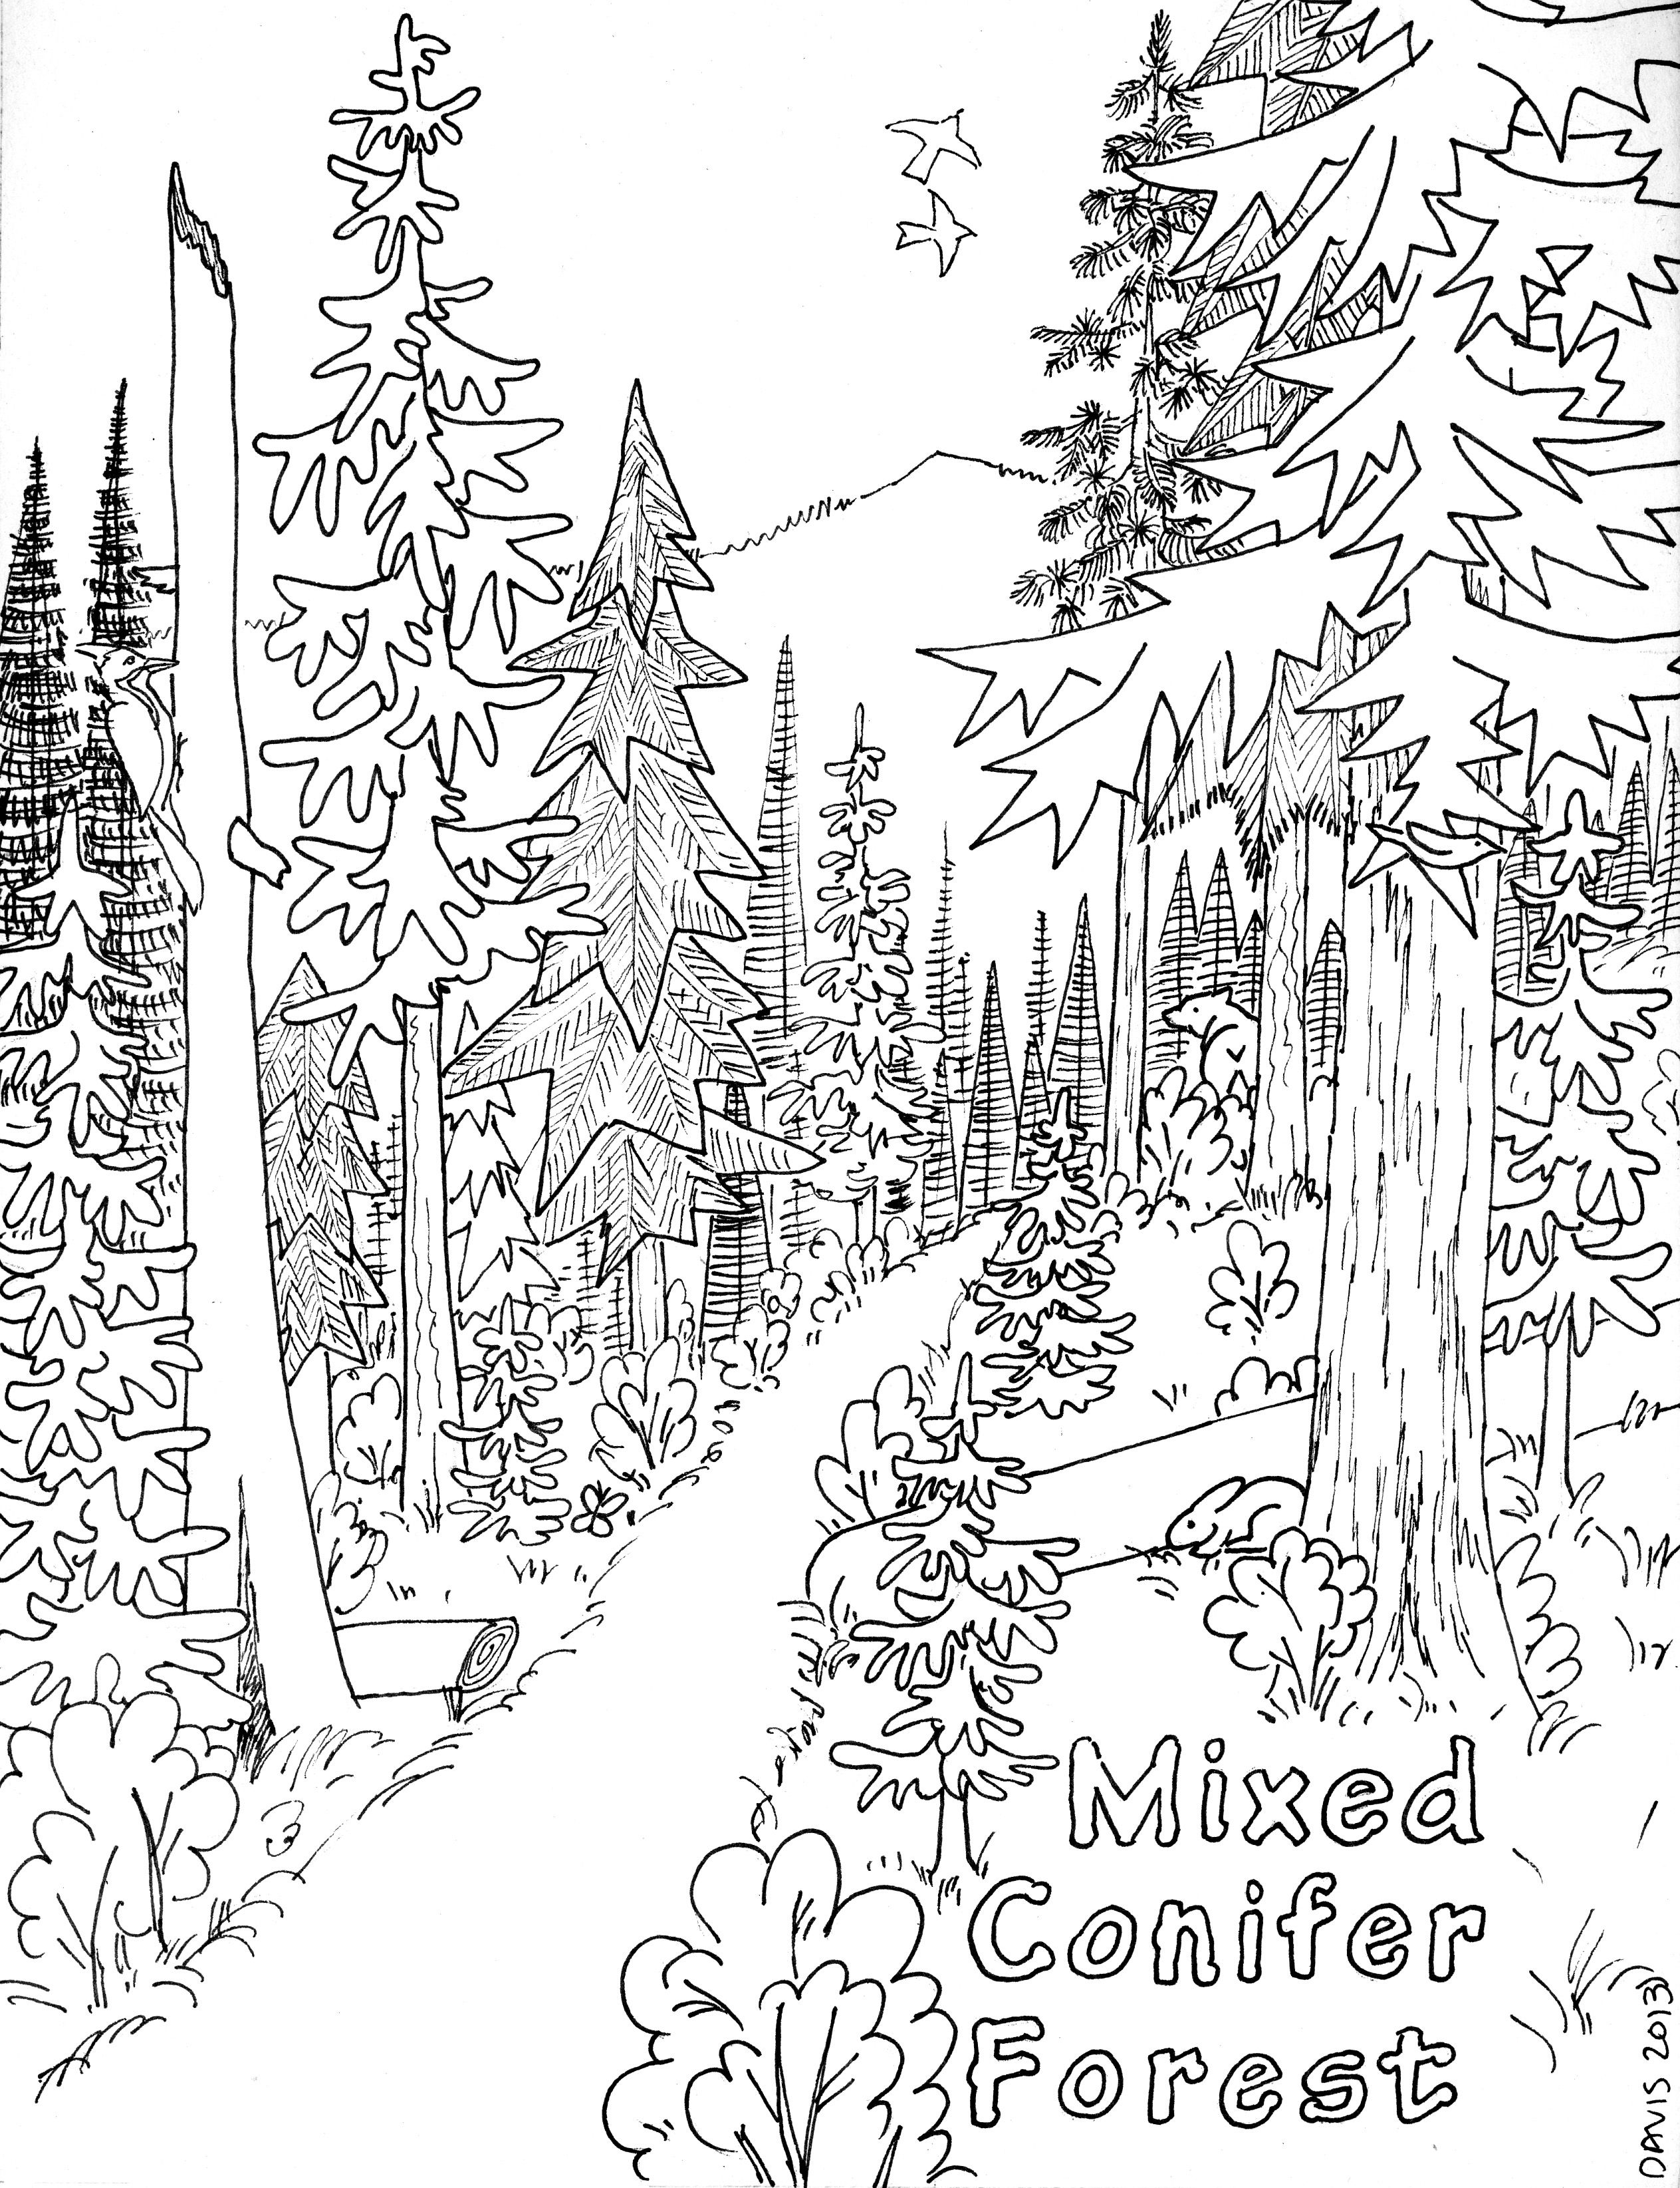 Into The Woods Coloring Pages Download Forest Coloring Pages Tree Coloring Page Coloring Pages Nature